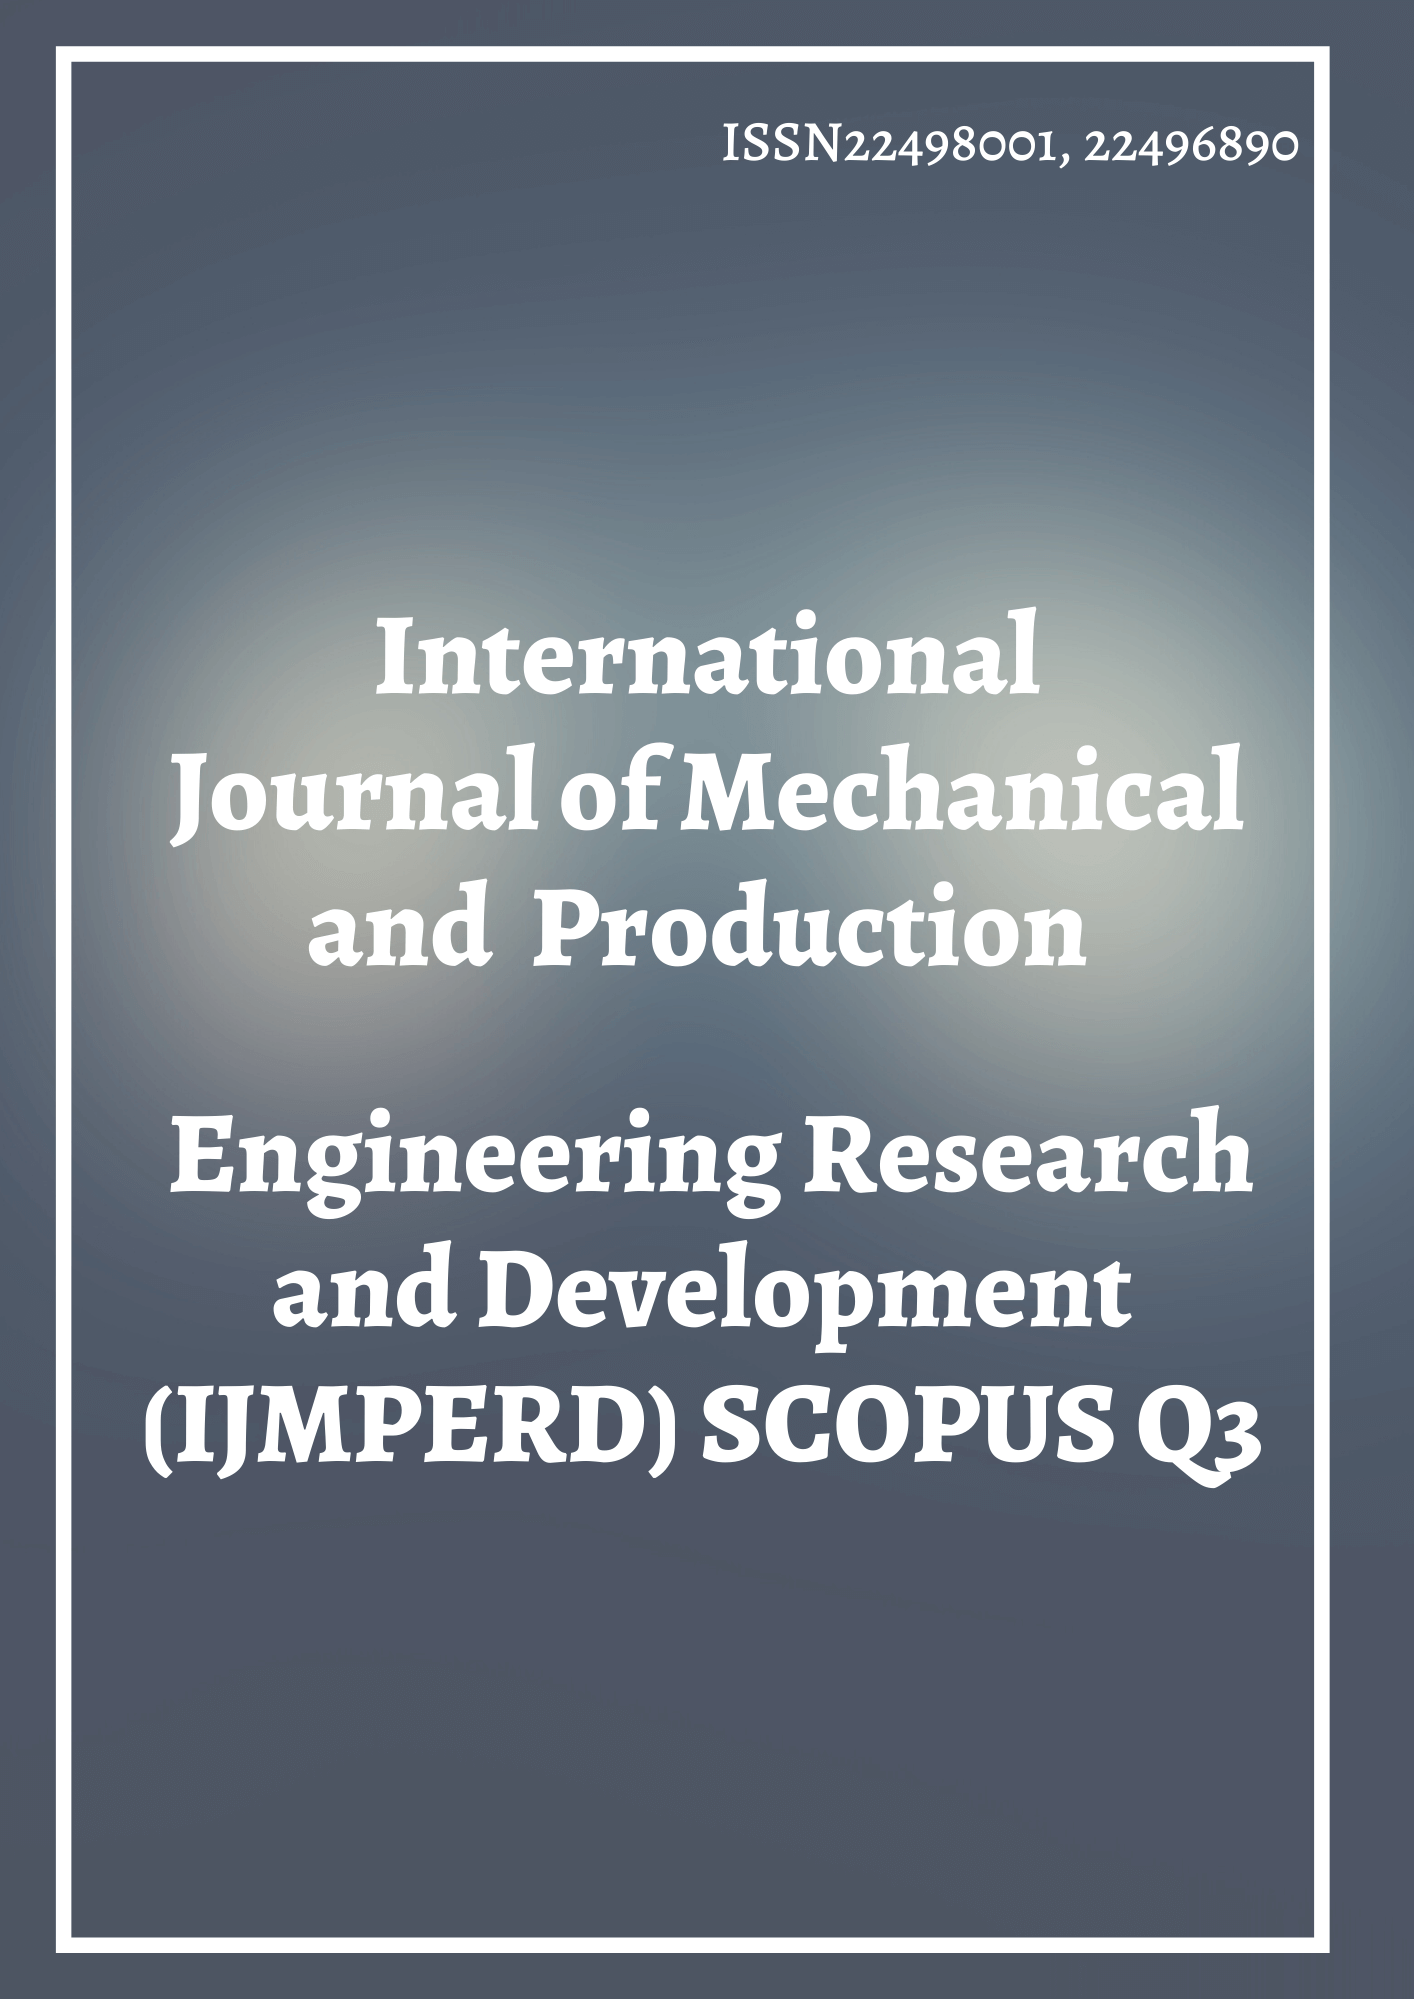 International Journal of Mechanical and Production Engineering  Research and Development (IJMPERD) SCOPUS Q3